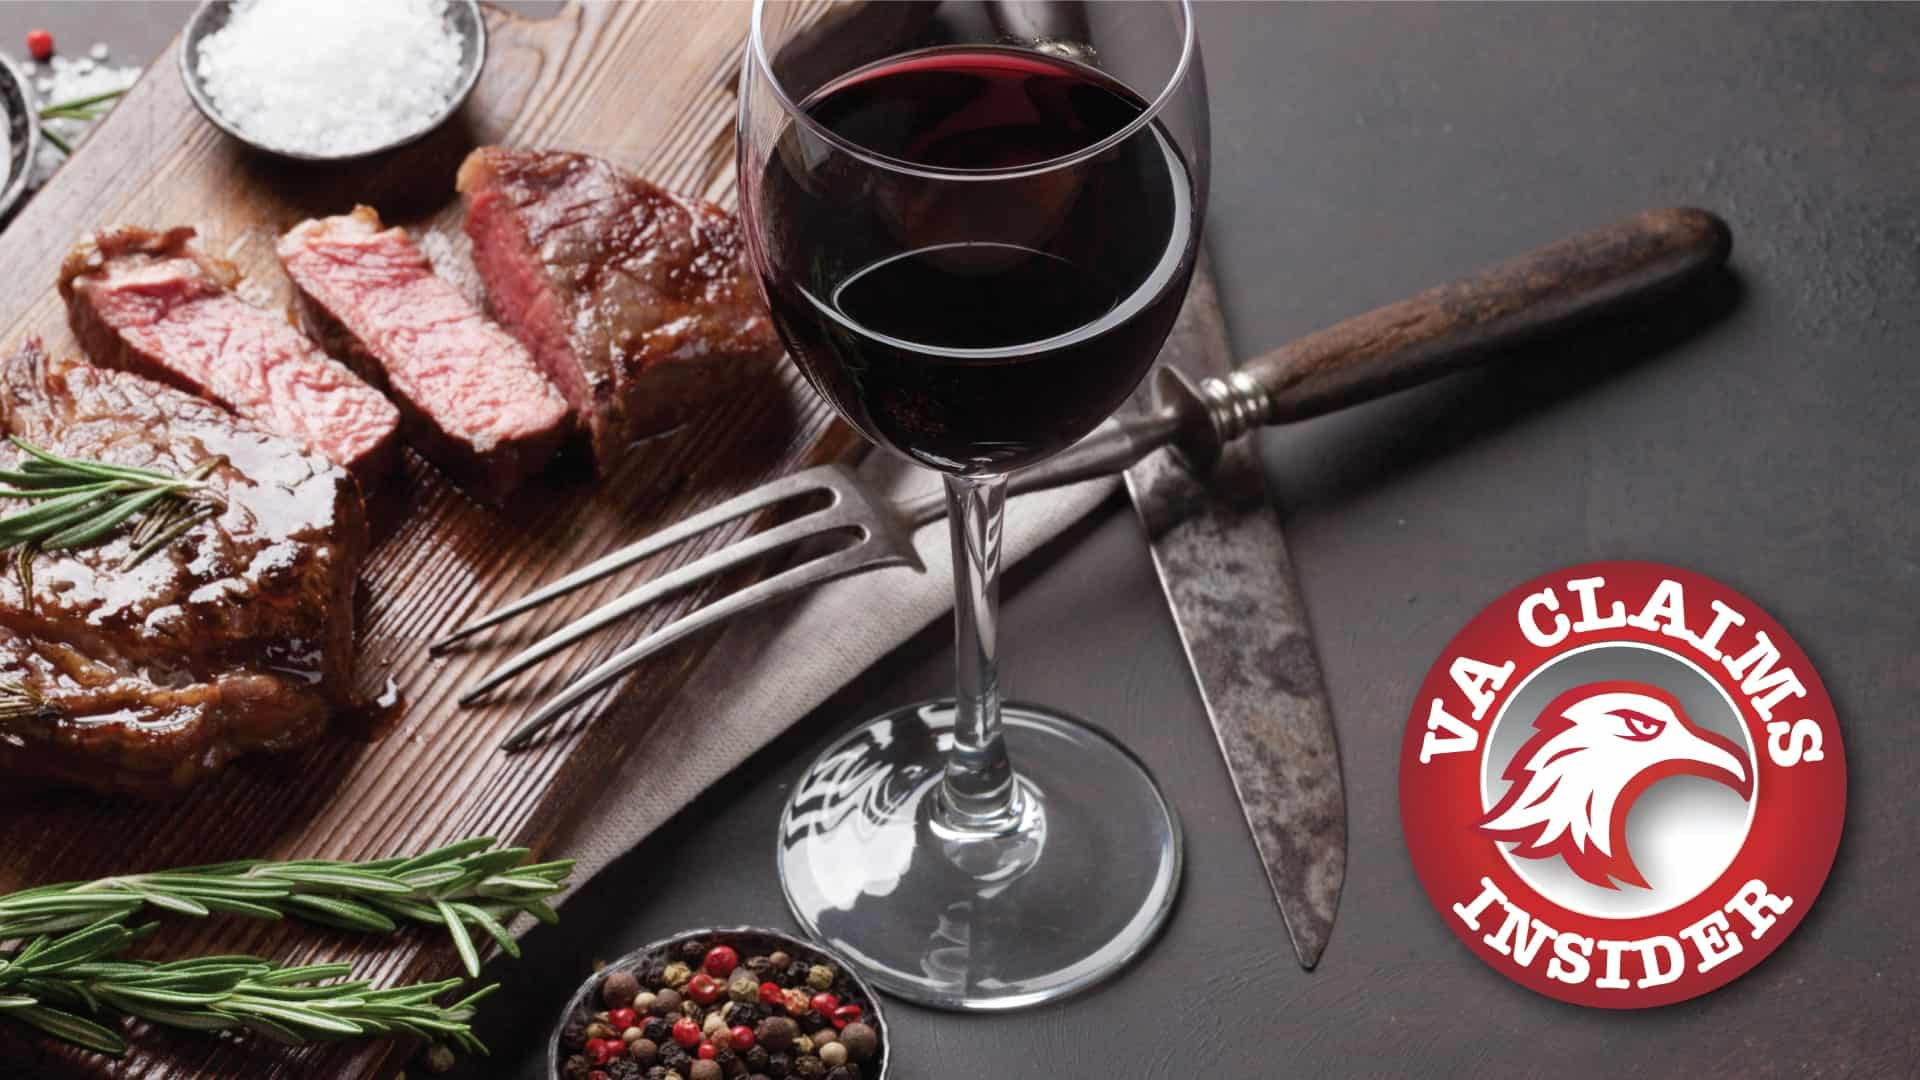 Food and Wine Discounts for Veterans - VA Claims Insider